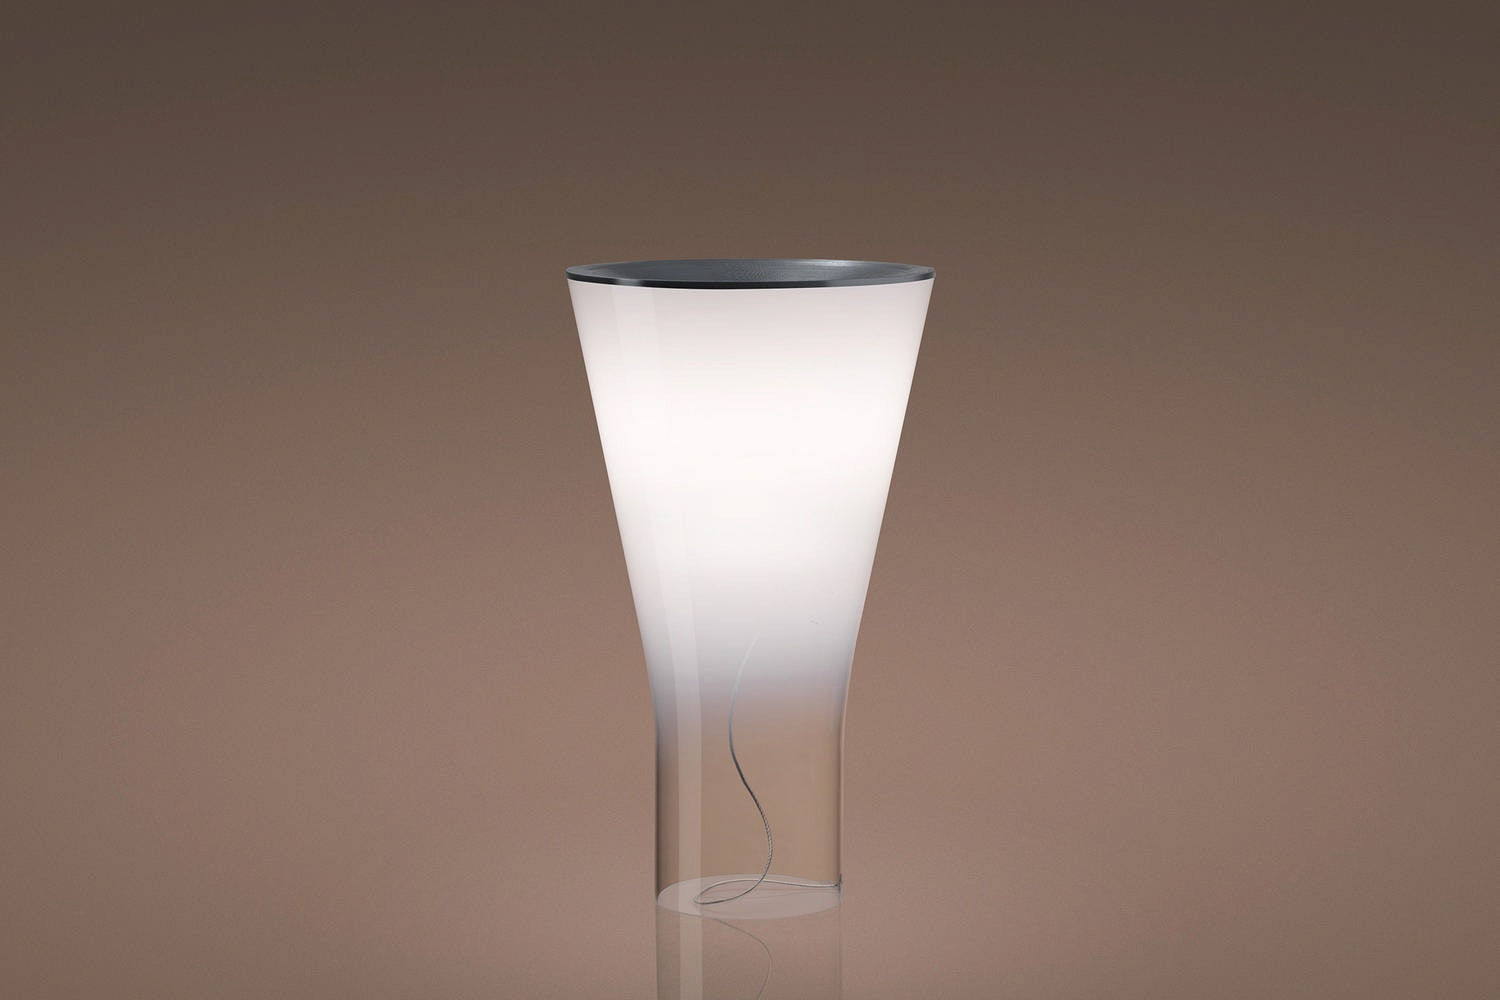 Soffio LED Touch Dimmer Table Lamp by Ludovica & Roberto Palomba for Foscarini